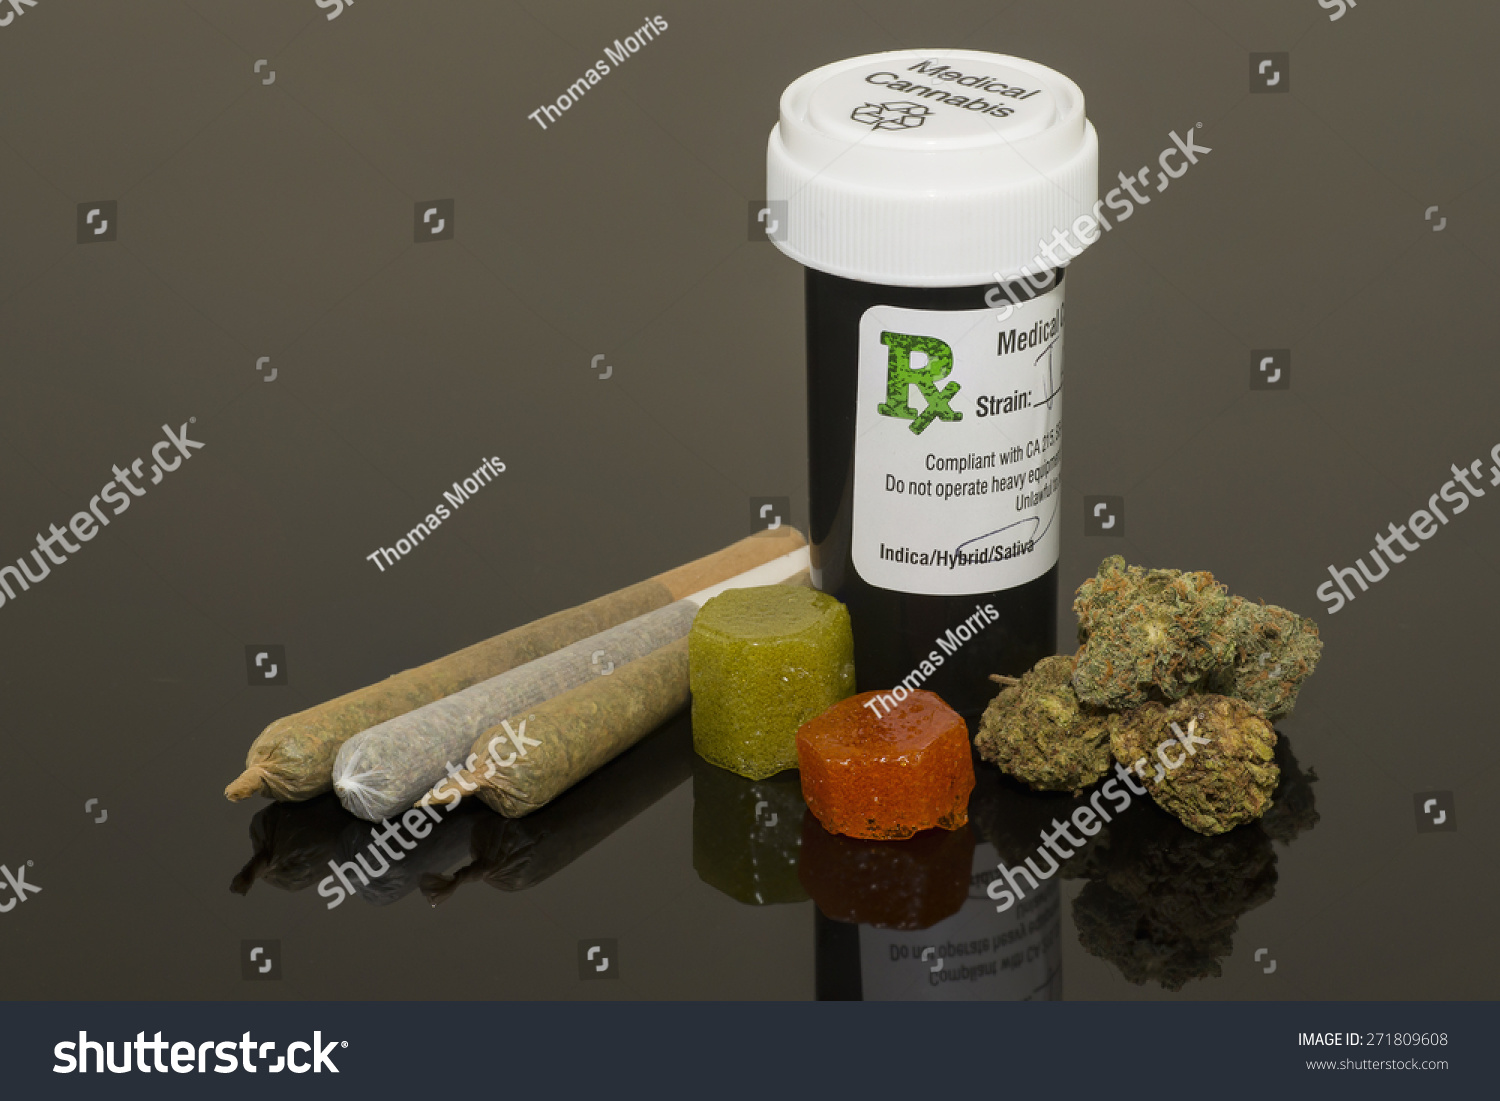 the versatility of marijuana as a medical and recreational drug Marijuana legalization hasn't led to more drug abuse: study  only 8 states and the district of columbia have legalized the drug for recreational use  after recreational marijuana became .